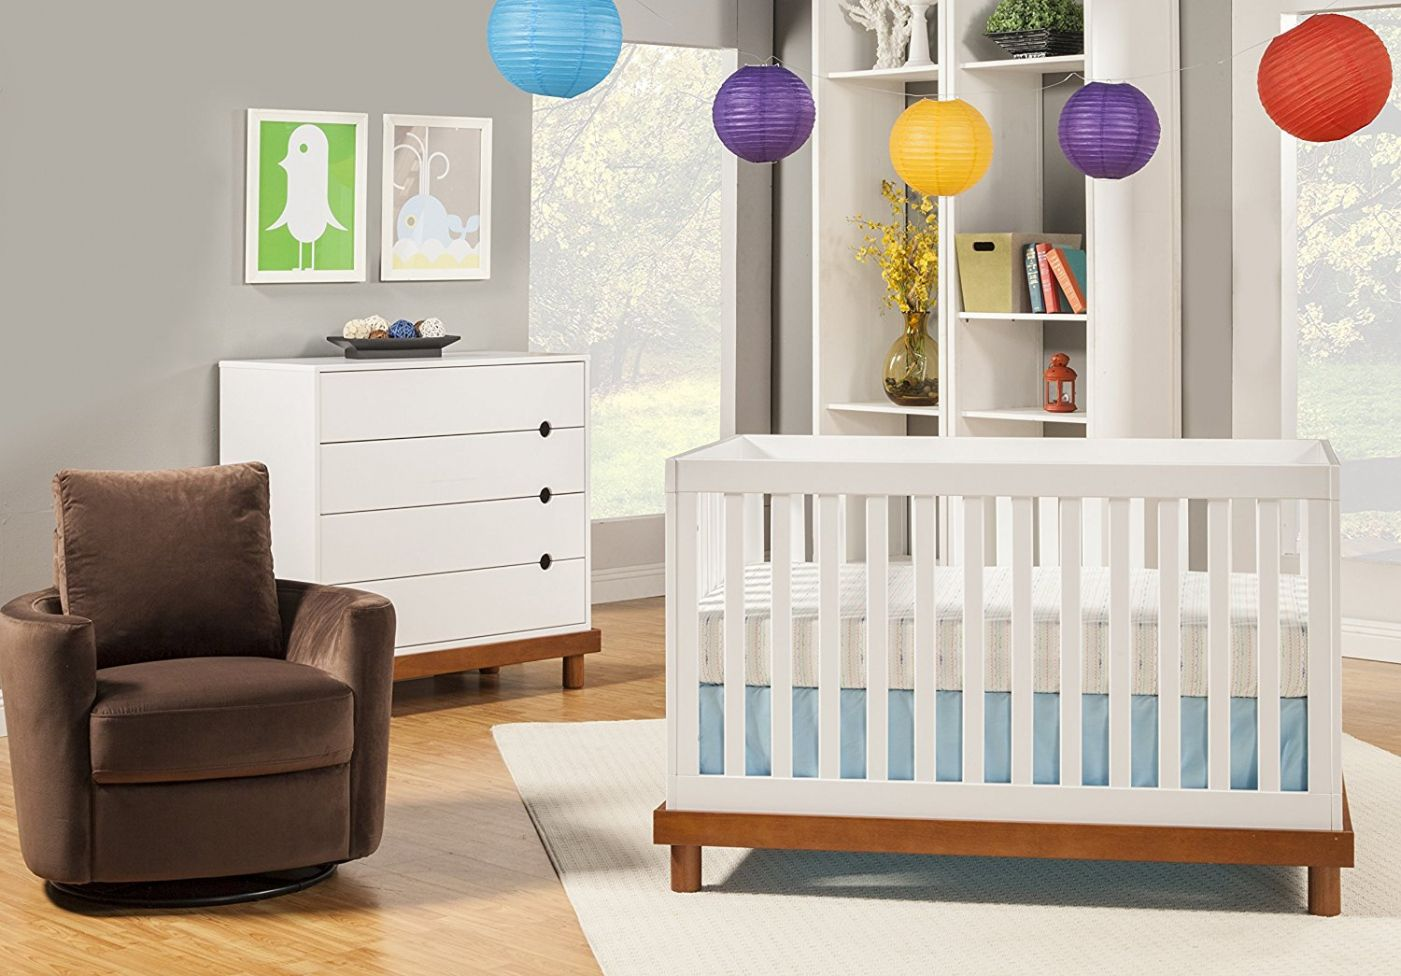 30 Baby Furniture Deals Interior Designs For Bedrooms Check More At Http